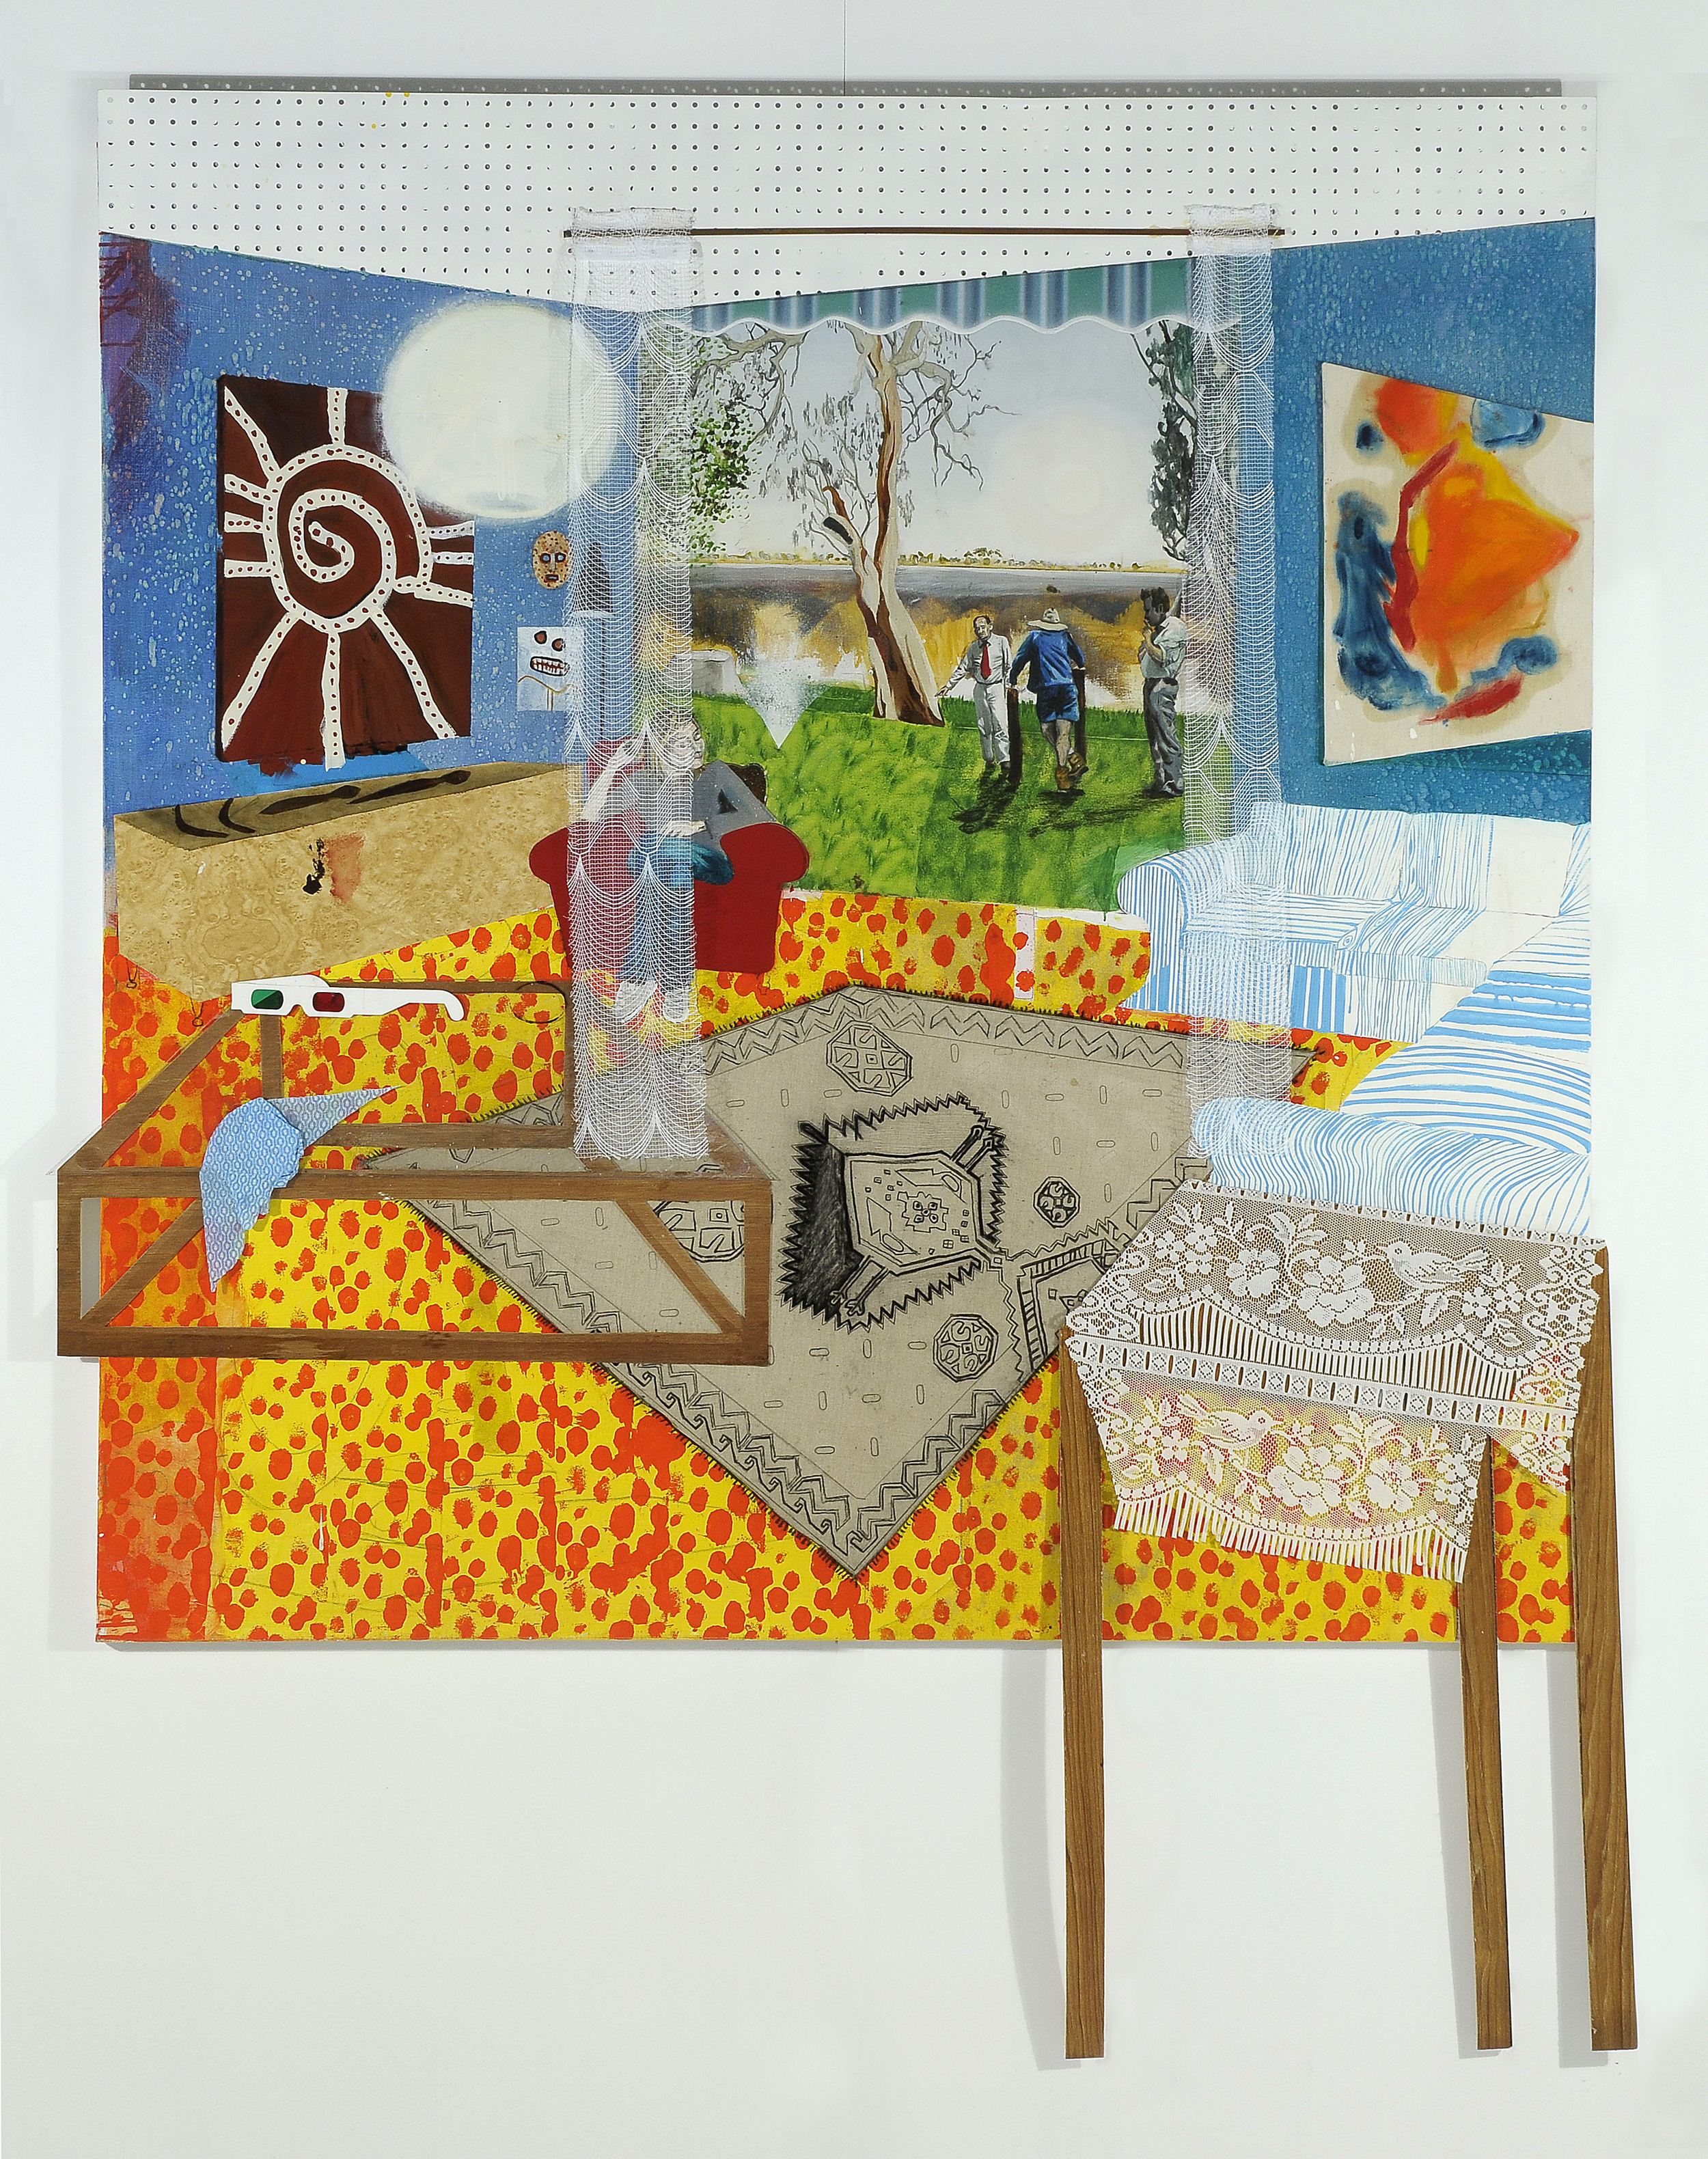 Inside and outsiders,  2008 Acrylic, oil and enamel on linen 180 x 180cm